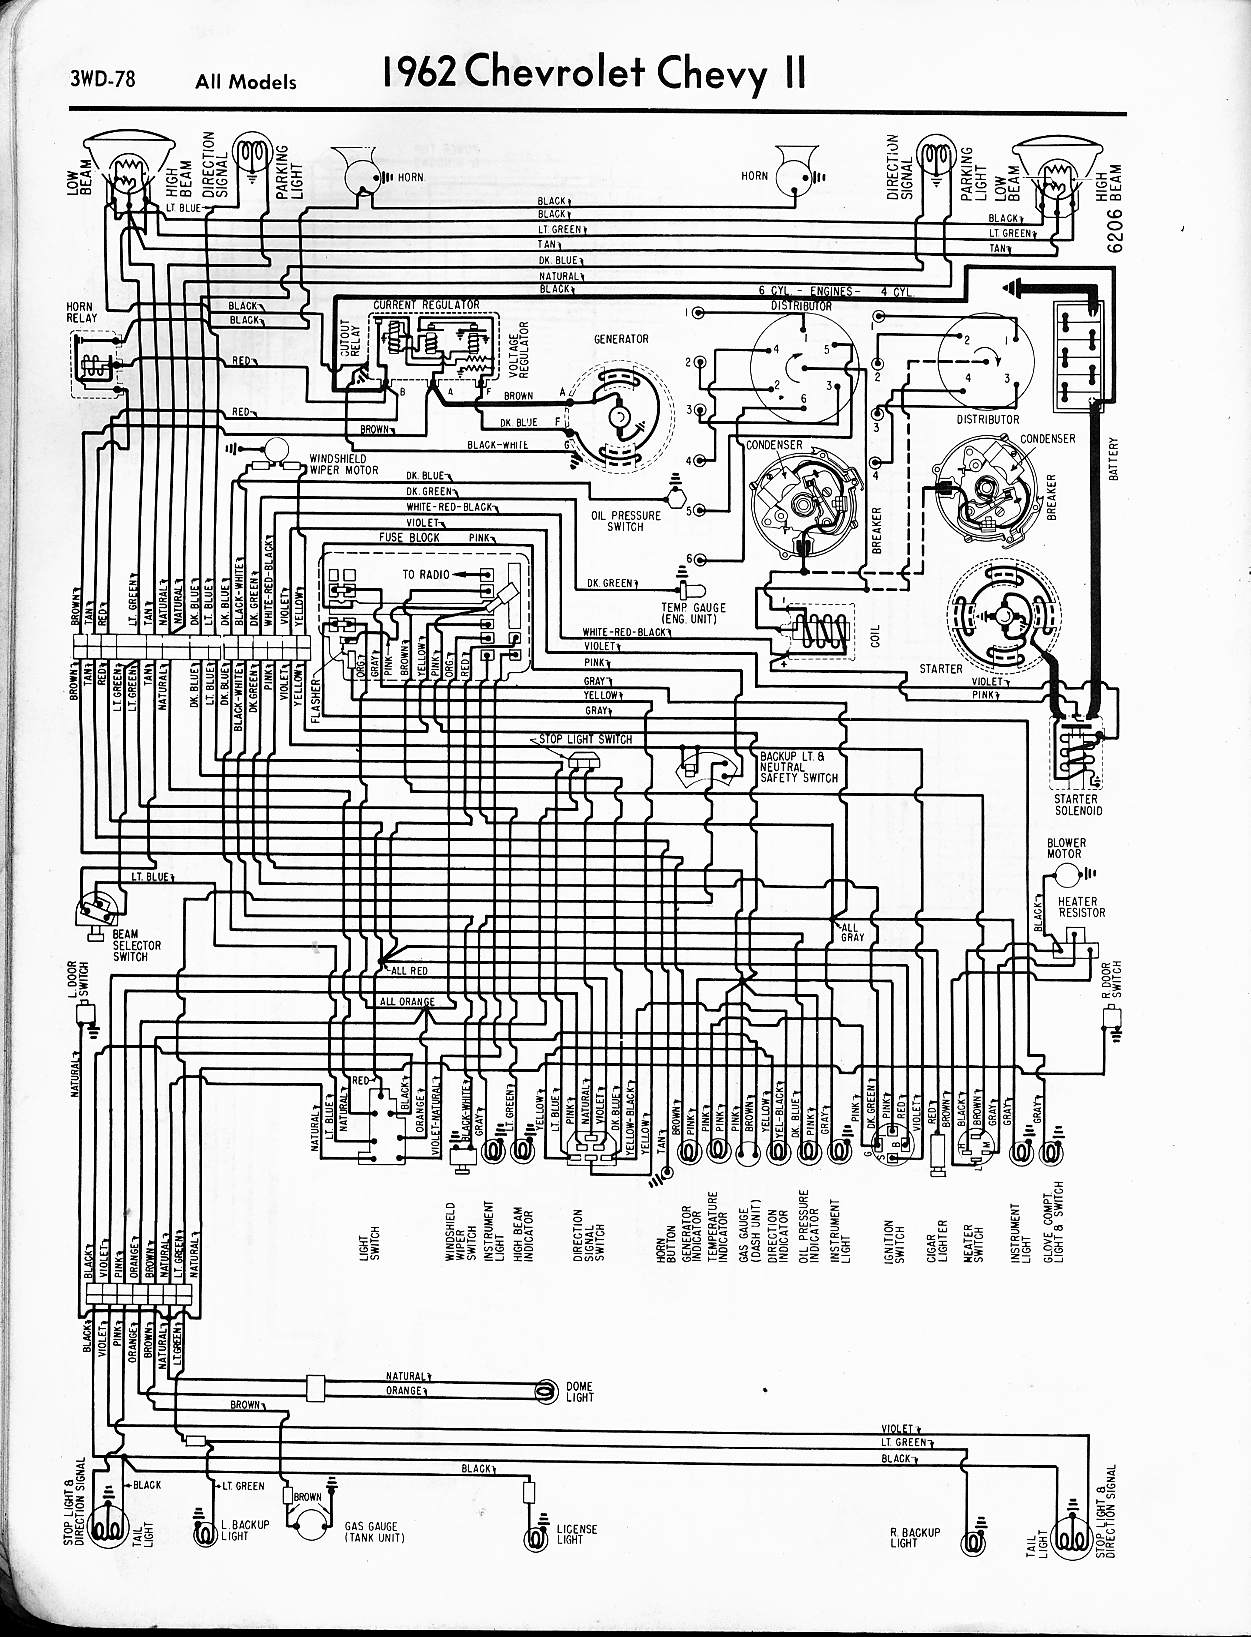 Wiring Diagram On 73 Chevy C10 Distributor To Also 1962 Chevy Nova on dodge truck wiring diagram, dodge trailer wiring diagram, dodge caravan wiring diagram,